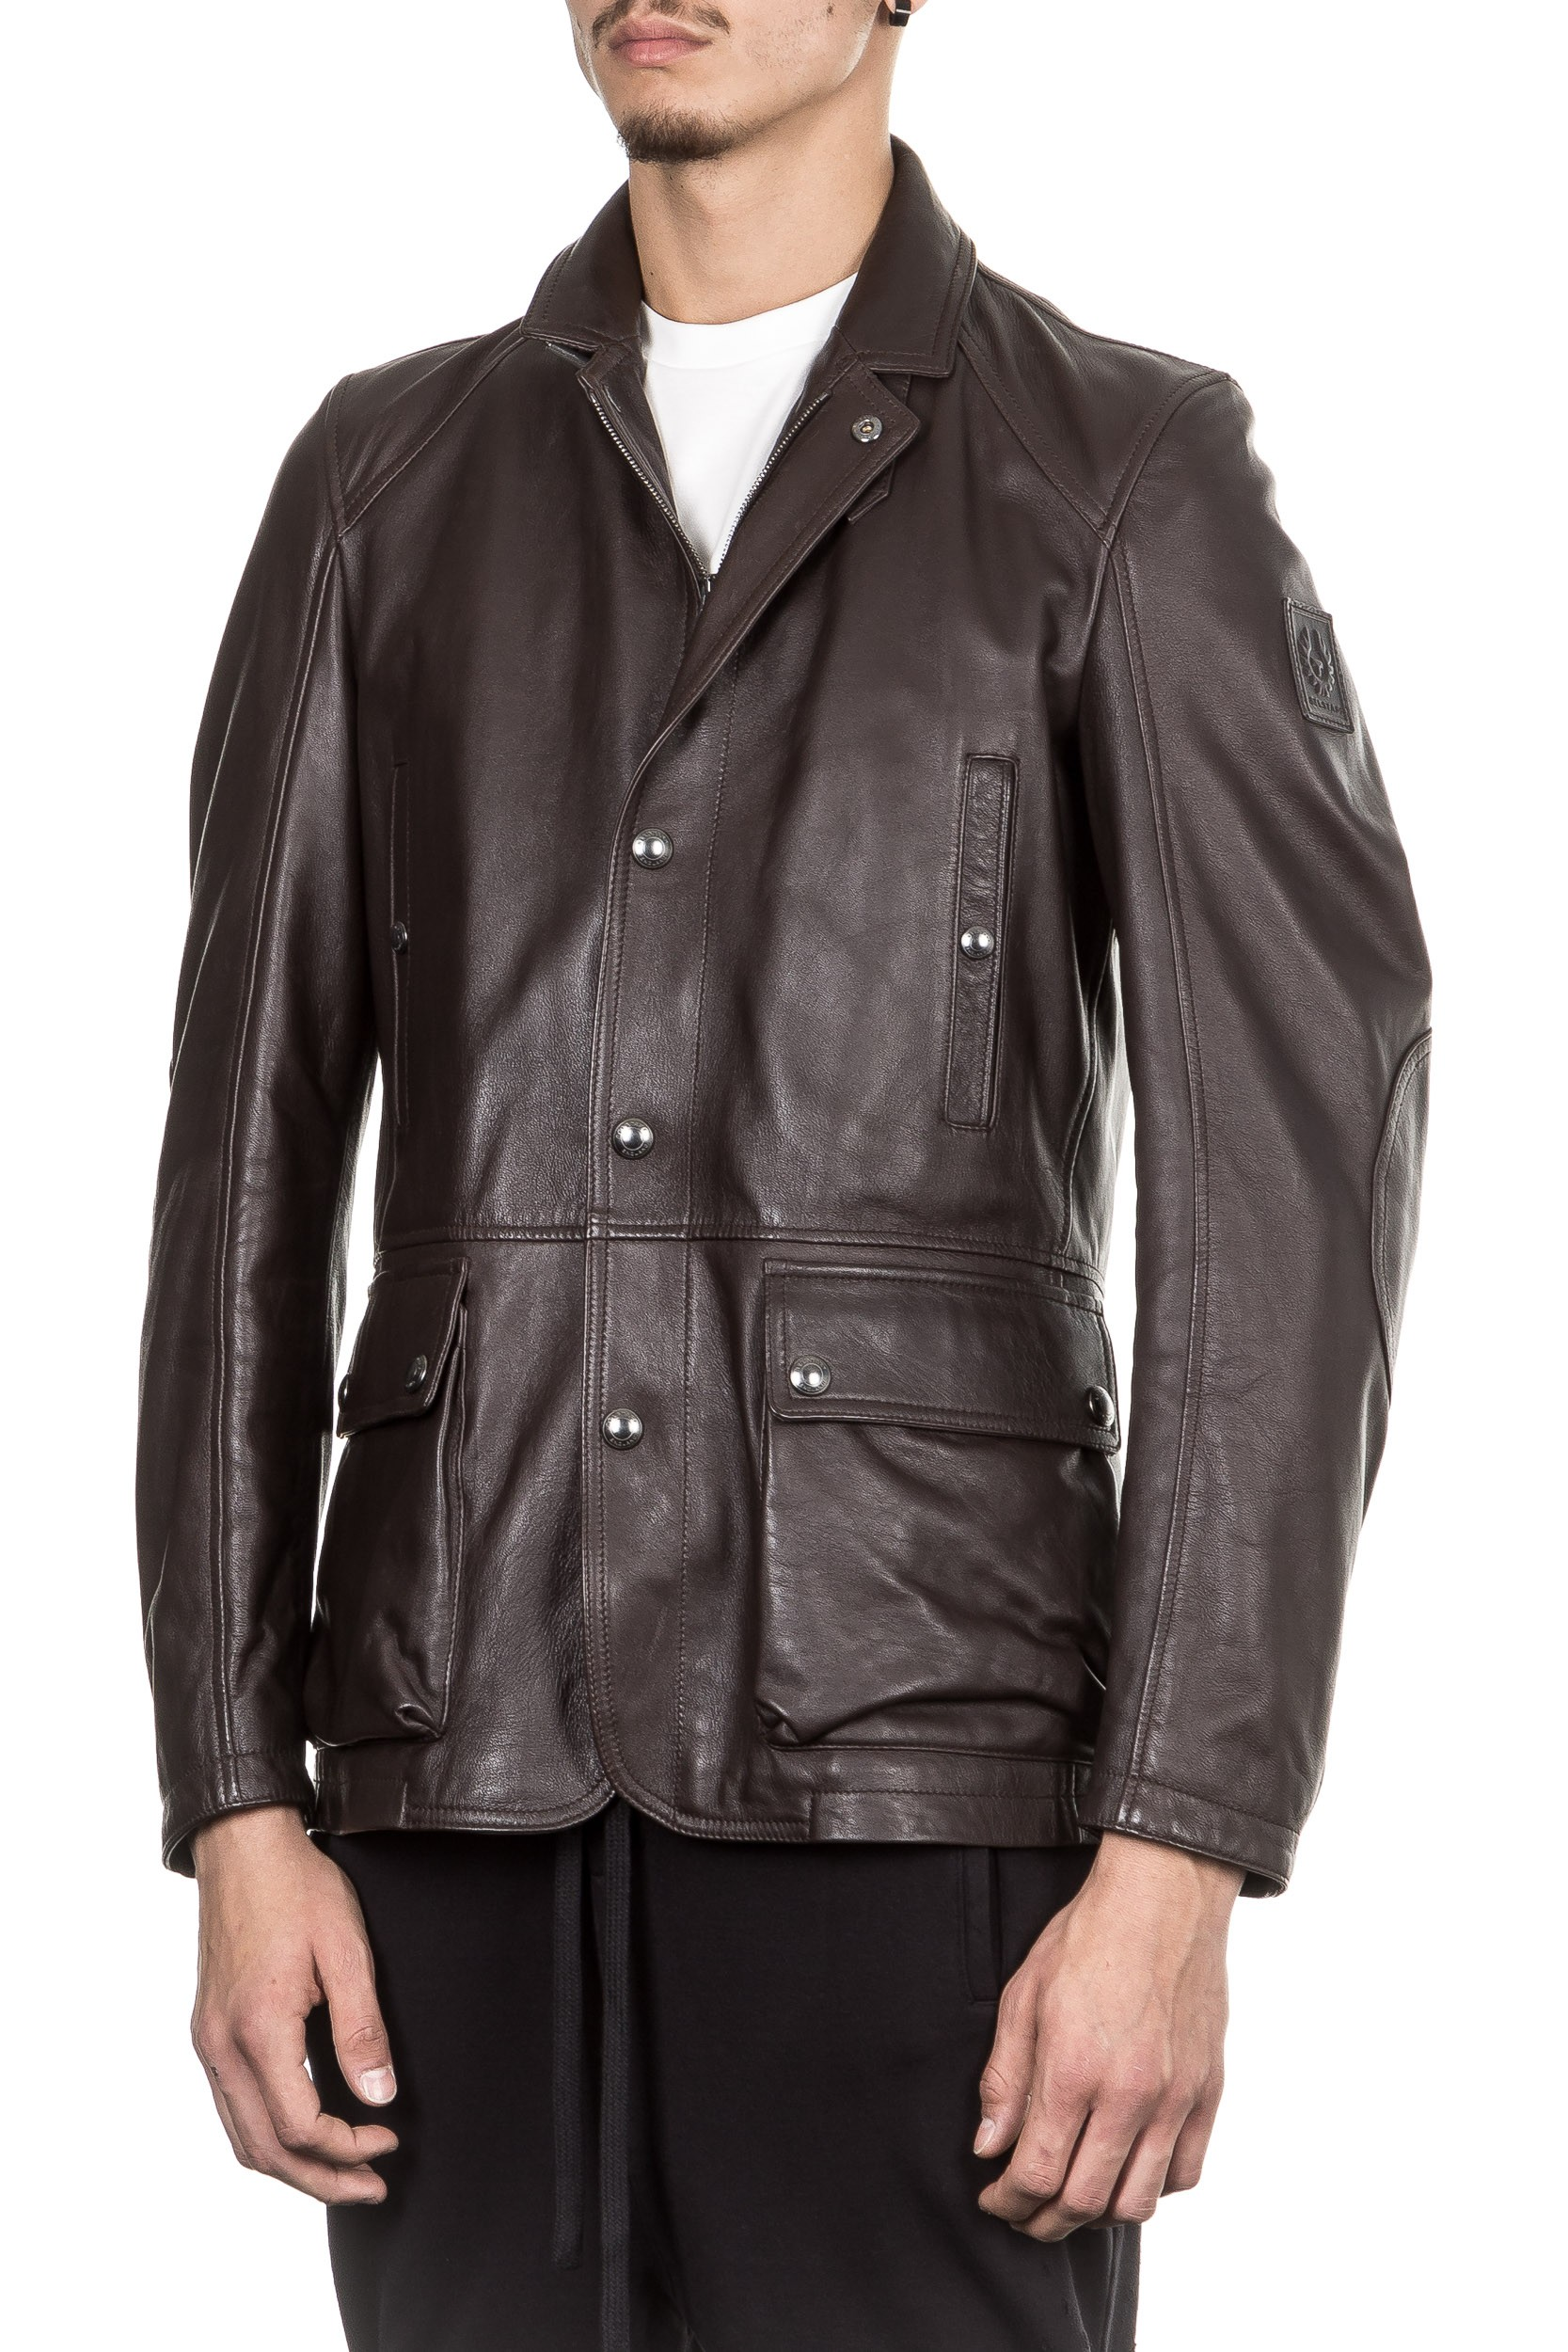 belstaff lederjacke herren braun apollo. Black Bedroom Furniture Sets. Home Design Ideas